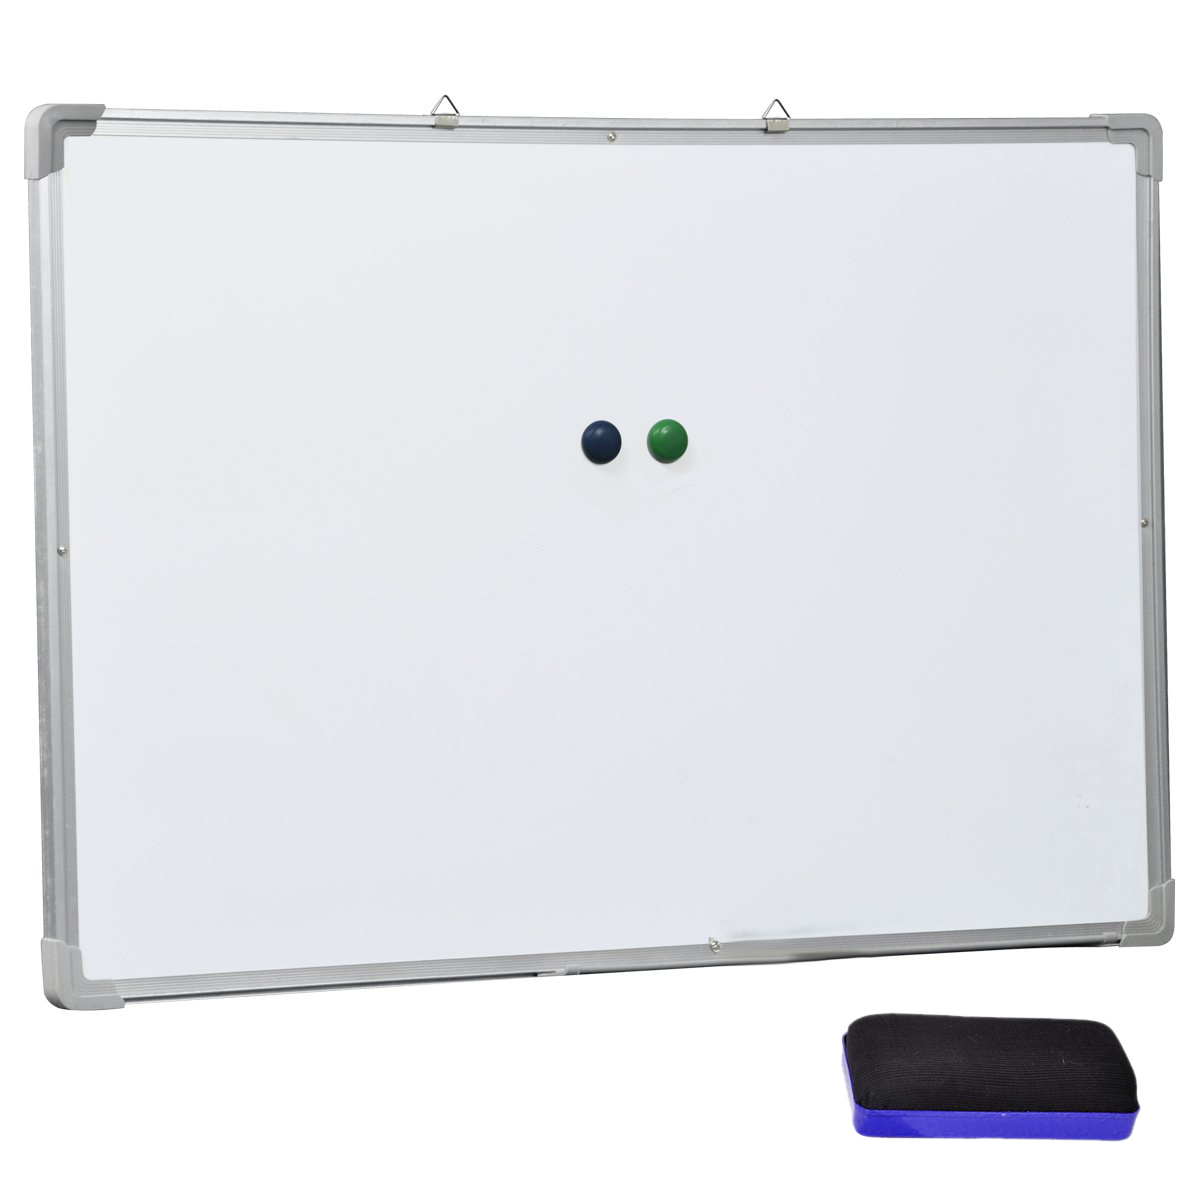 classroom whiteboard price. affordable 70x50cm magnetic white board whiteboard classroom teaching with a cleaner eraser and two price